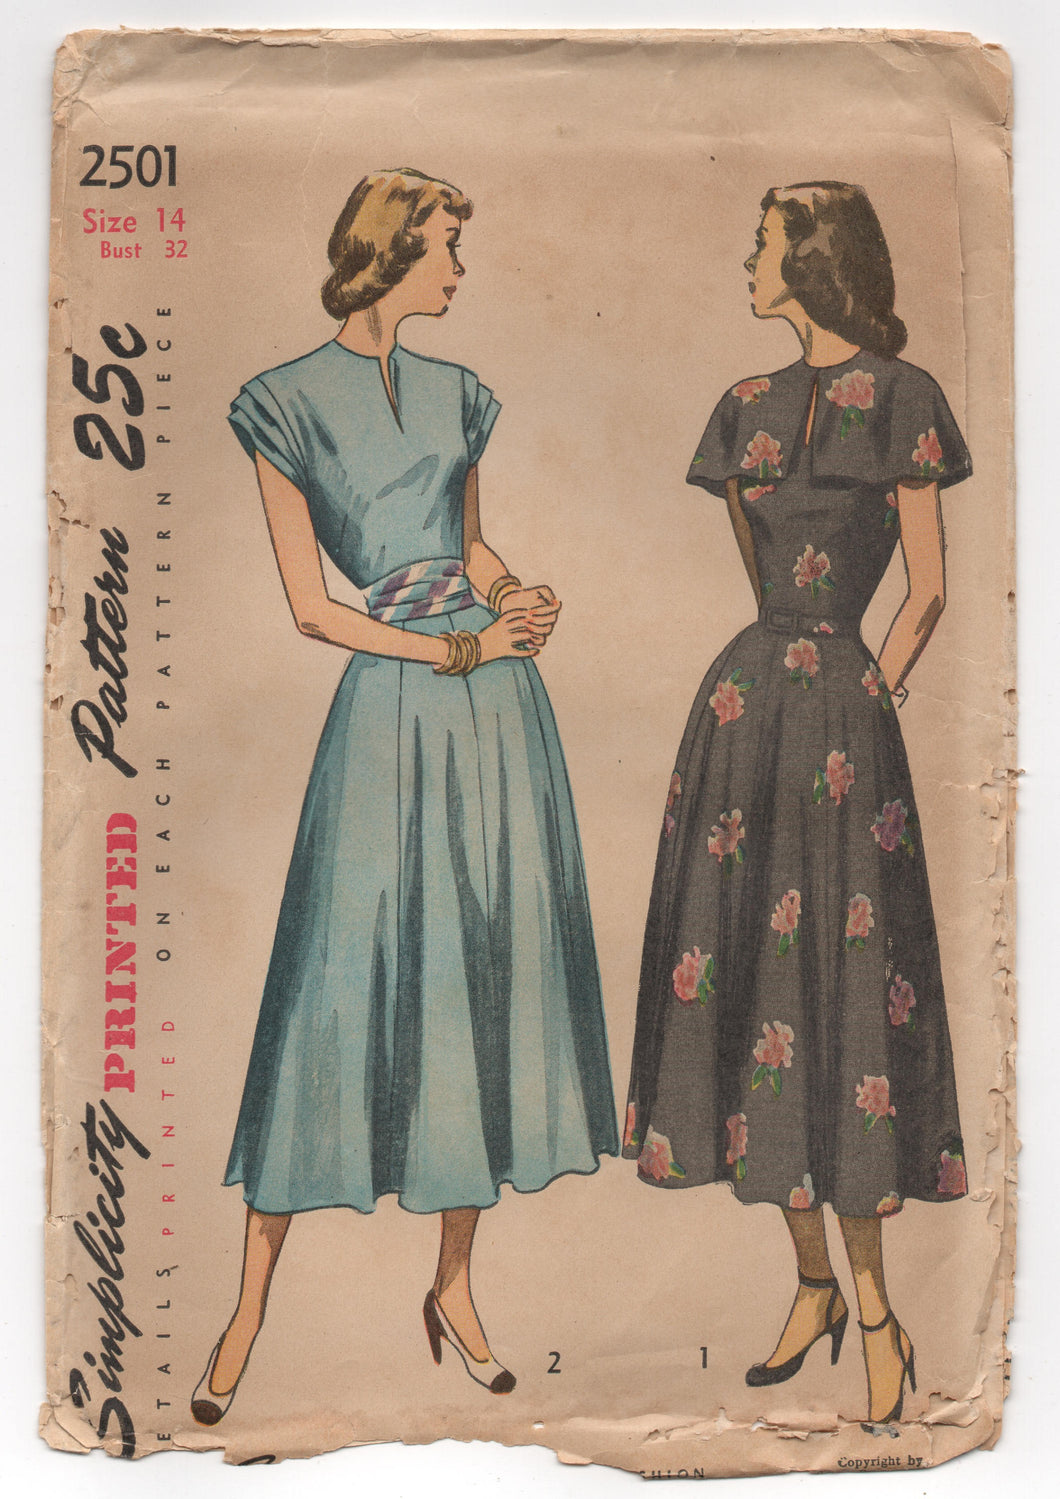 1940's Simplicity One Piece Dress with Gathered Sleeves, Belt and Cape Pattern - Bust 32